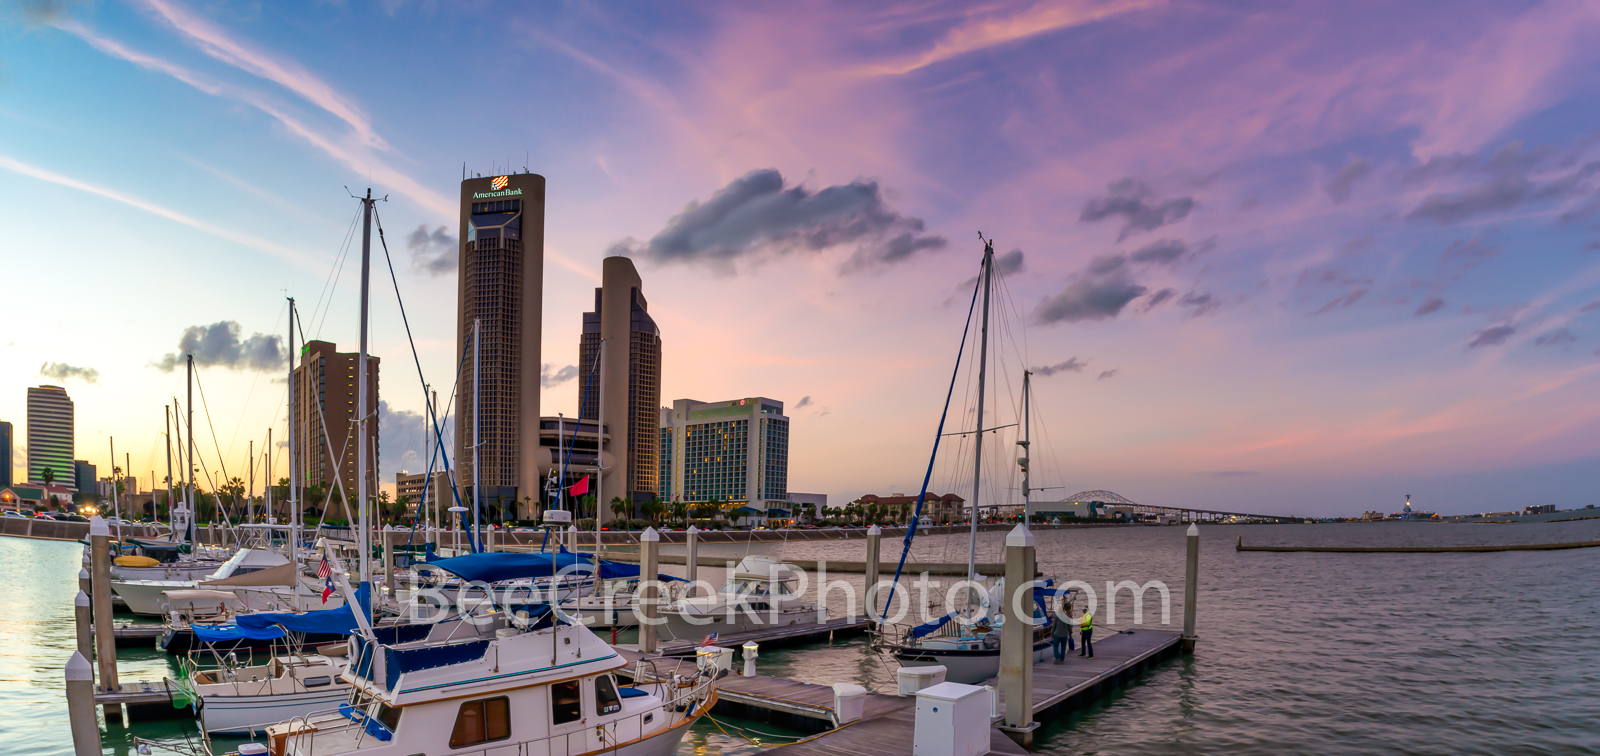 Corpus Skyline Dusk Pano   - Corpus Christi is a city of over 500,000 people and got it name from a spanish explorer in 1519...